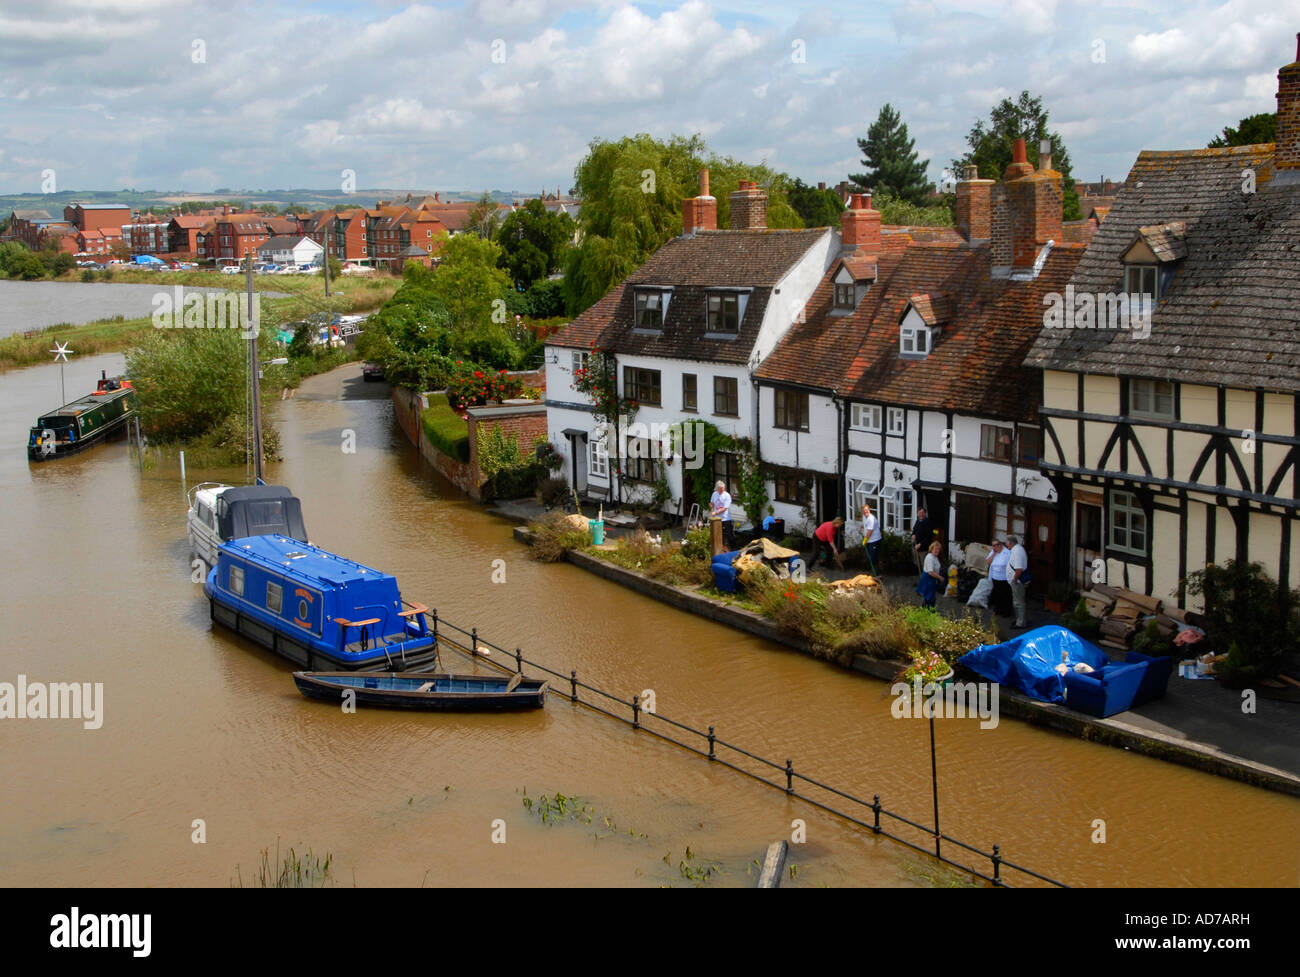 Flooding at Mill Bank in Tewkesbury July 2007 - Stock Image